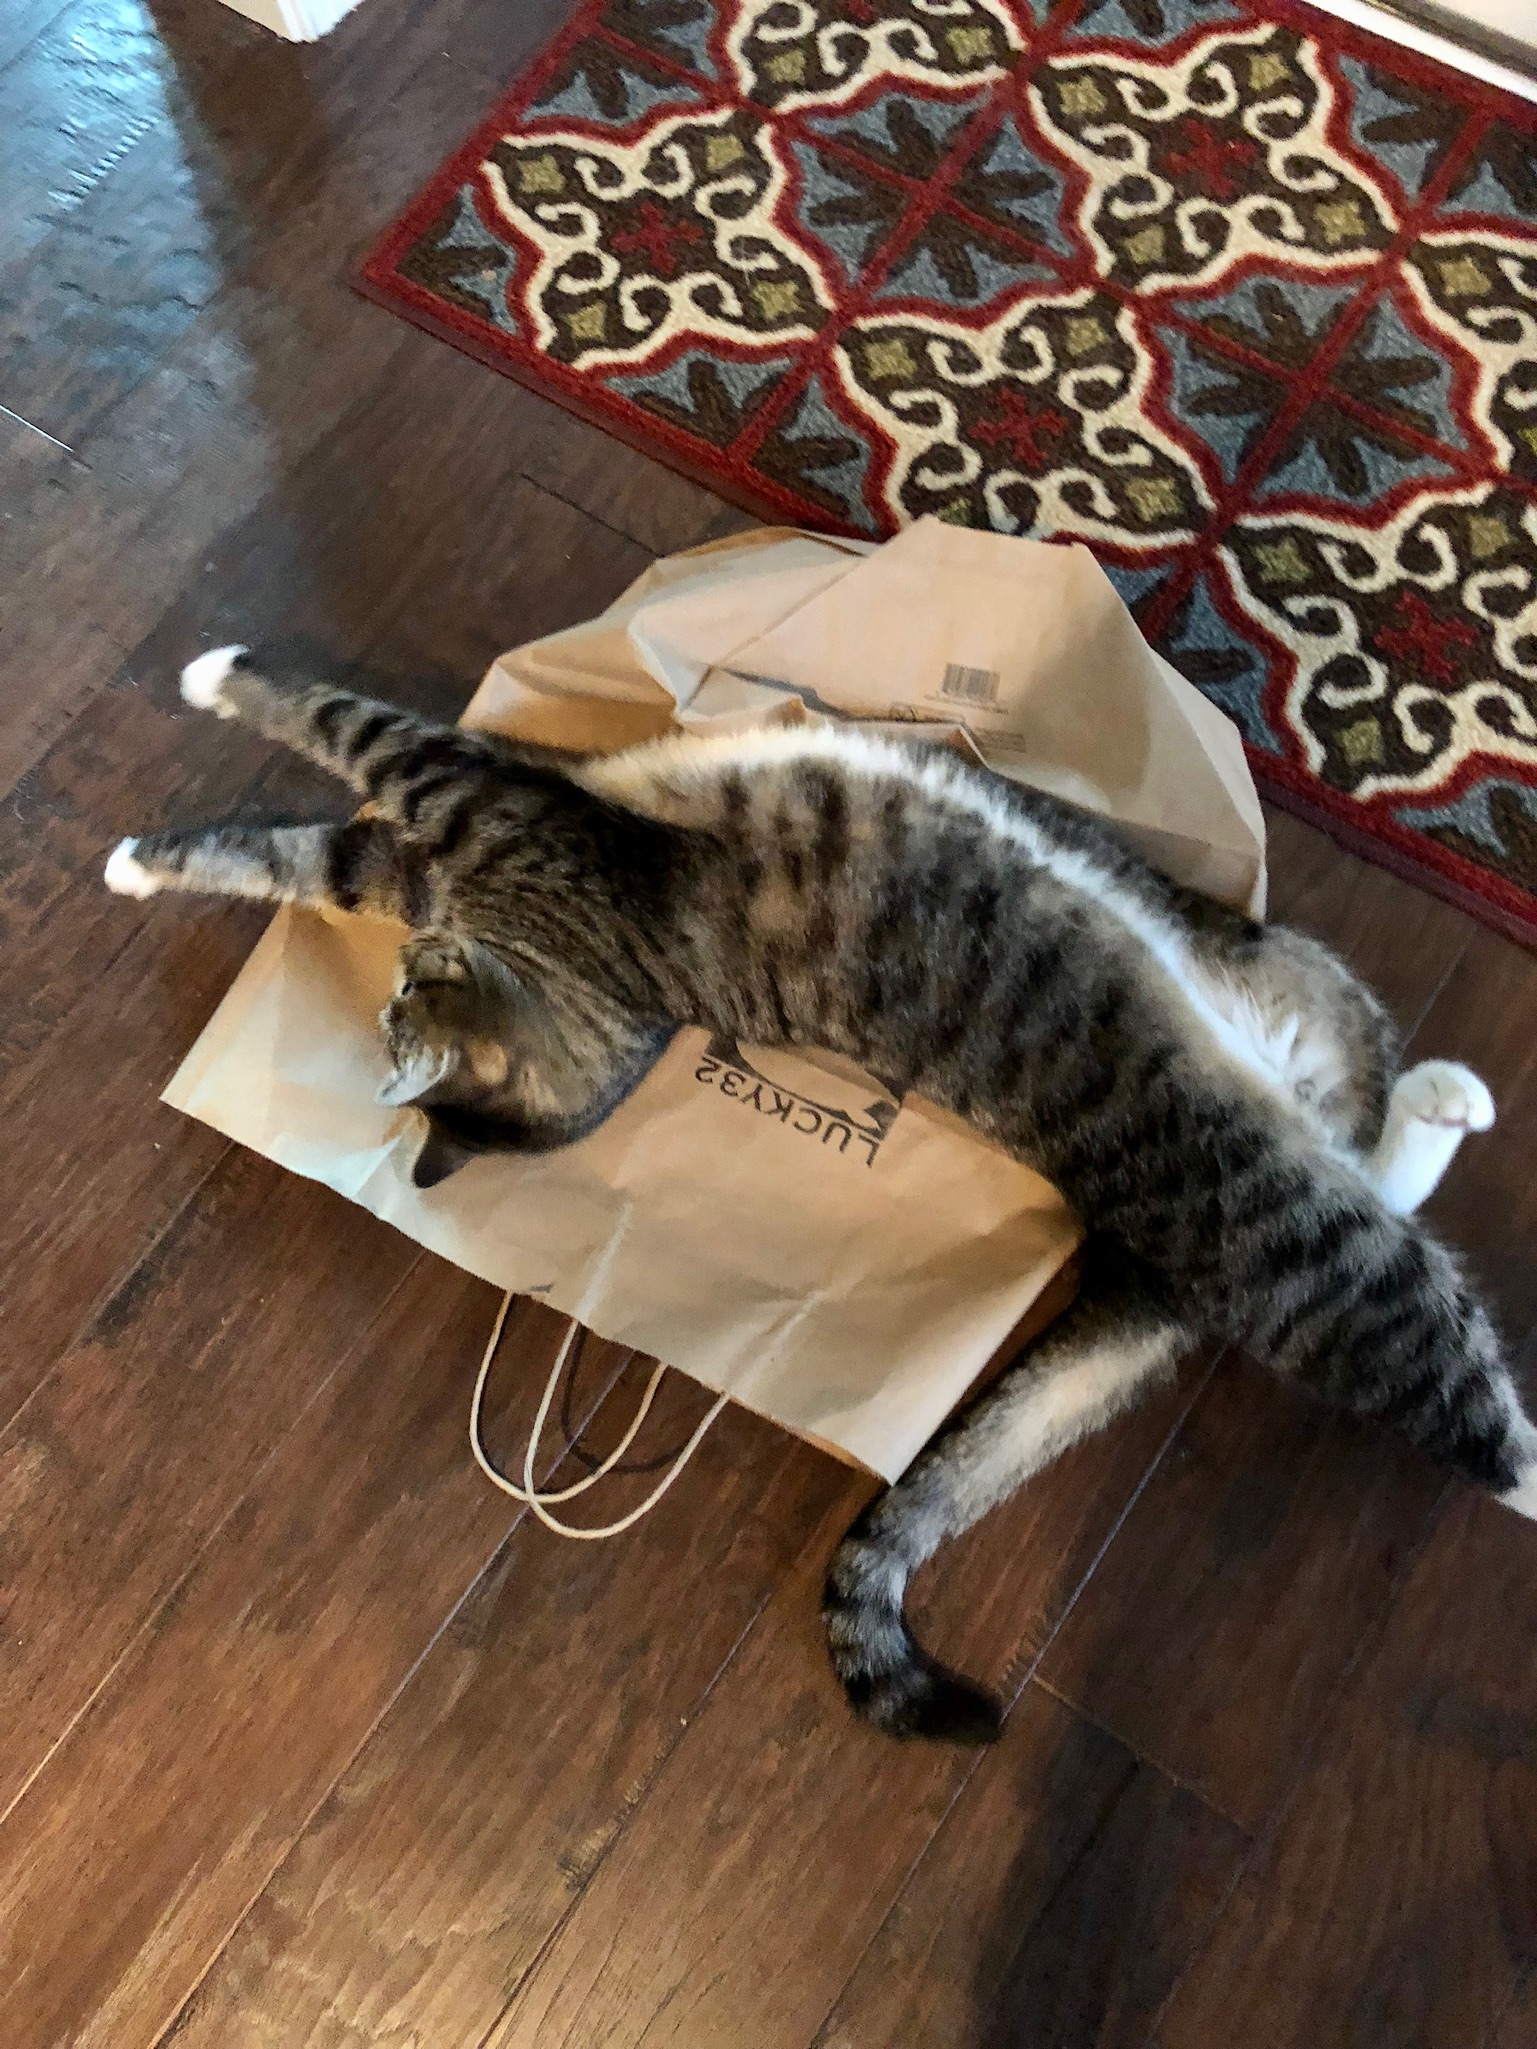 Haku stretched out on a crushed paper bag